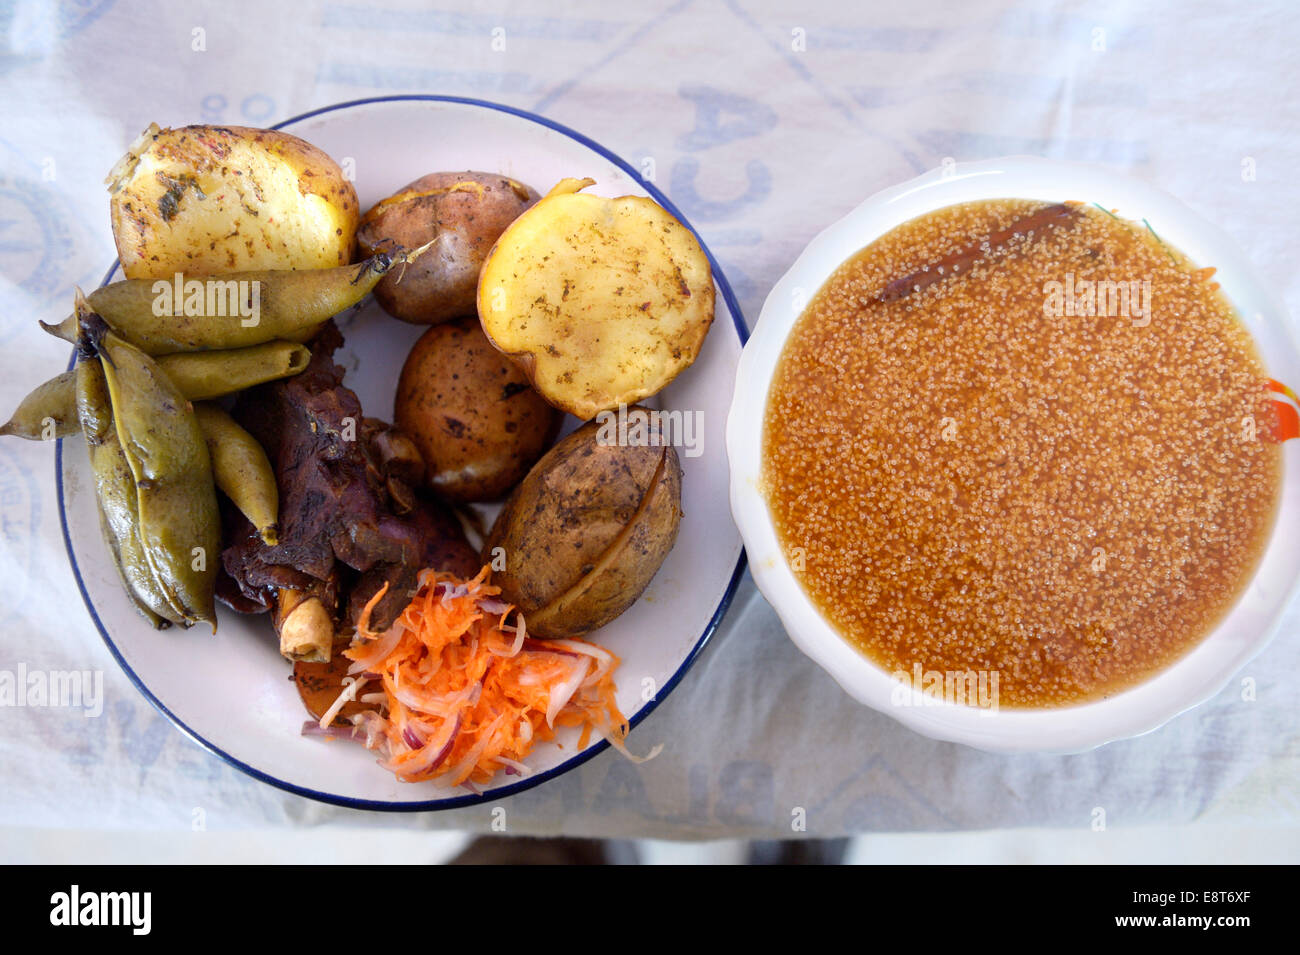 Traditional Andean cuisine, quinoa soup and a dish with potatoes, pork, Haba or broad beans and carrot salad, Chuquis - Stock Image